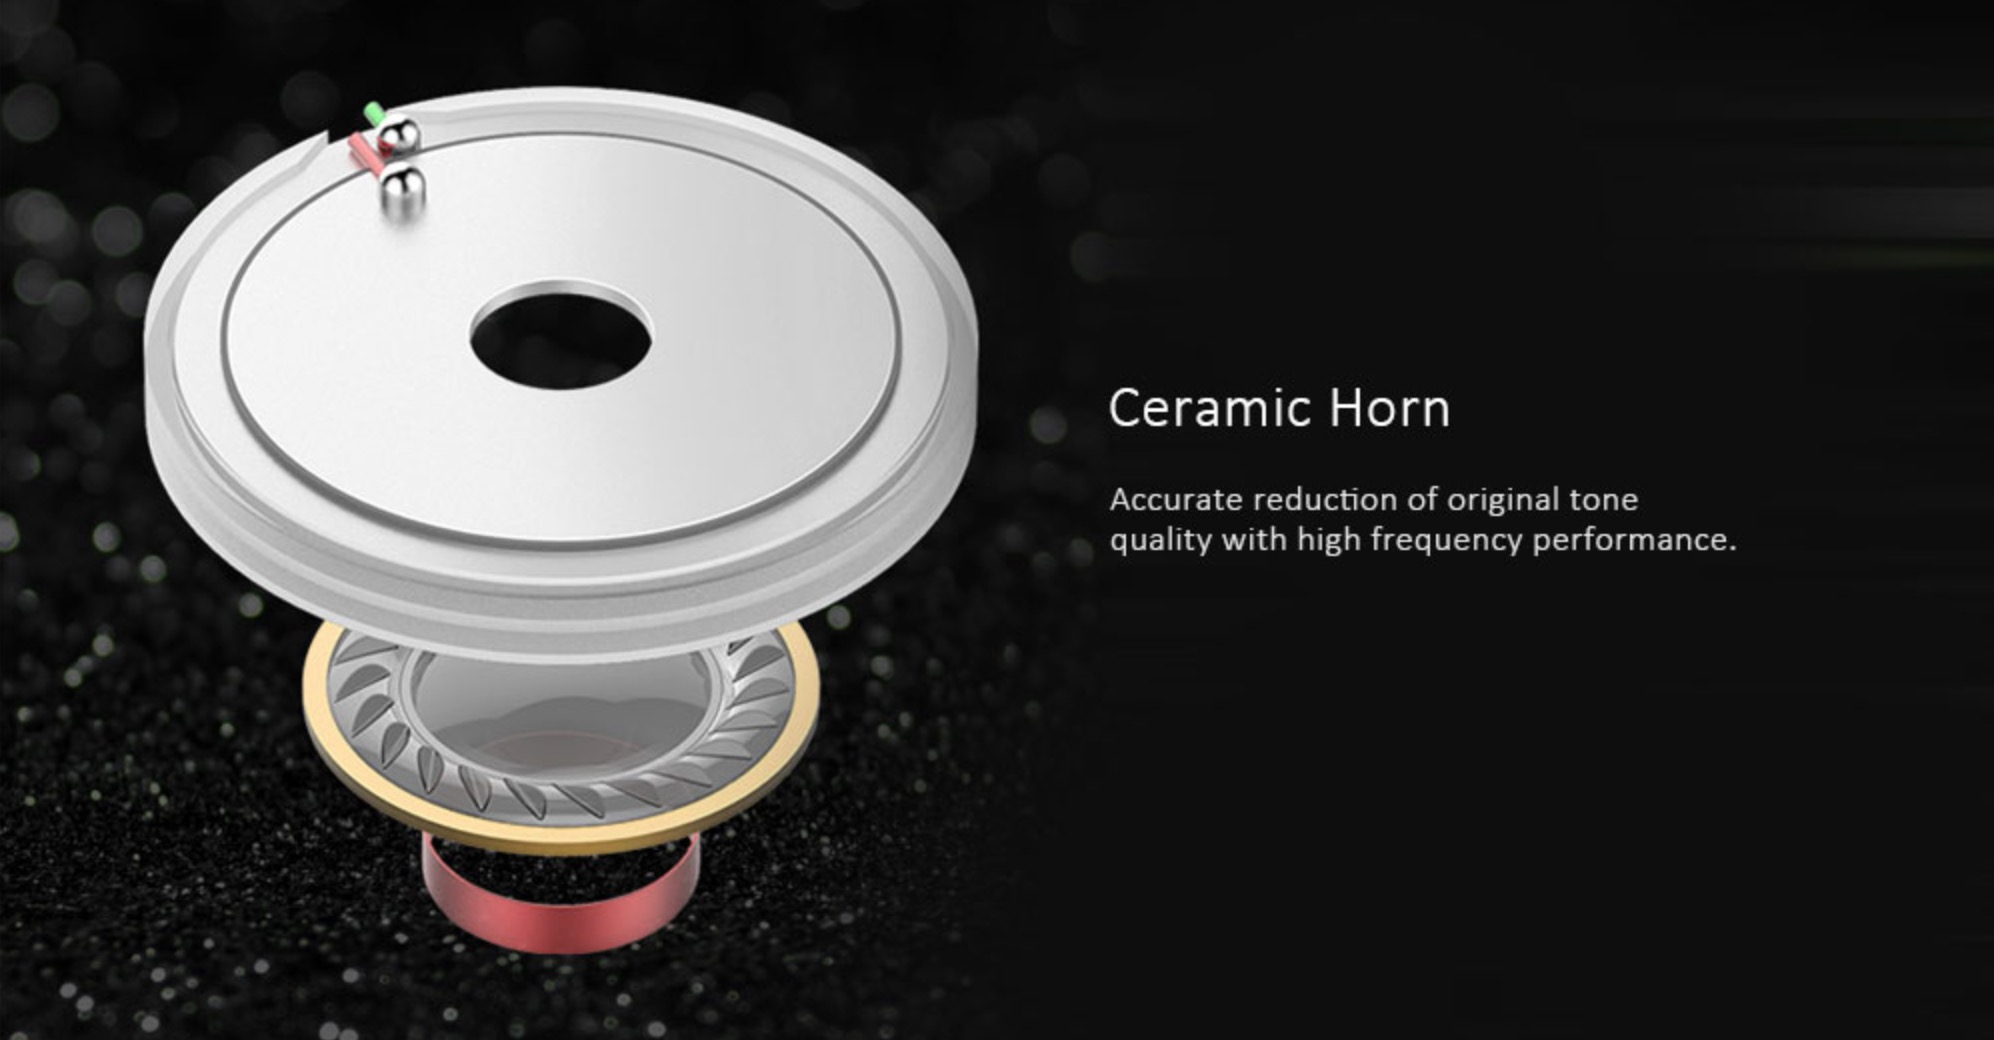 Ceramic Horn Accurate reduction of original tone quality with high frequency performance.